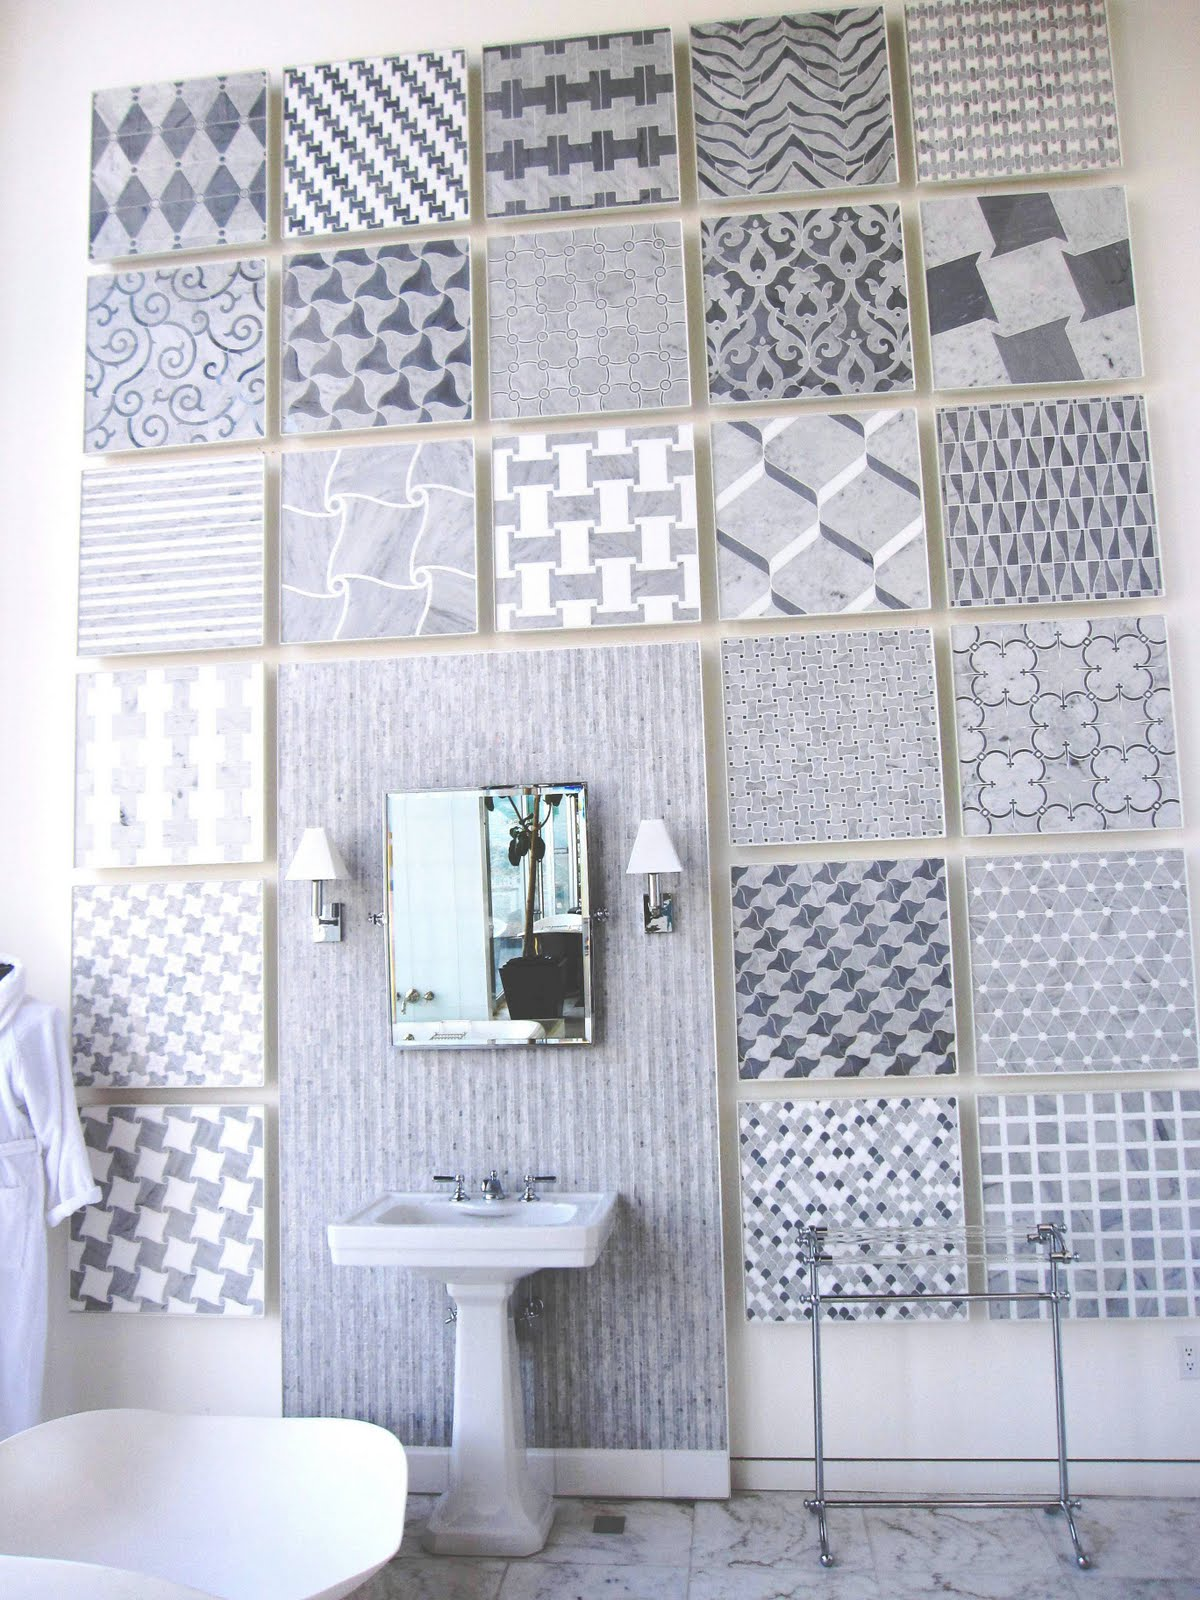 Tile file water works to cut intricate marble mosaic tiles cococozy mosaic tiles from aqualinea by waterworks dailygadgetfo Image collections